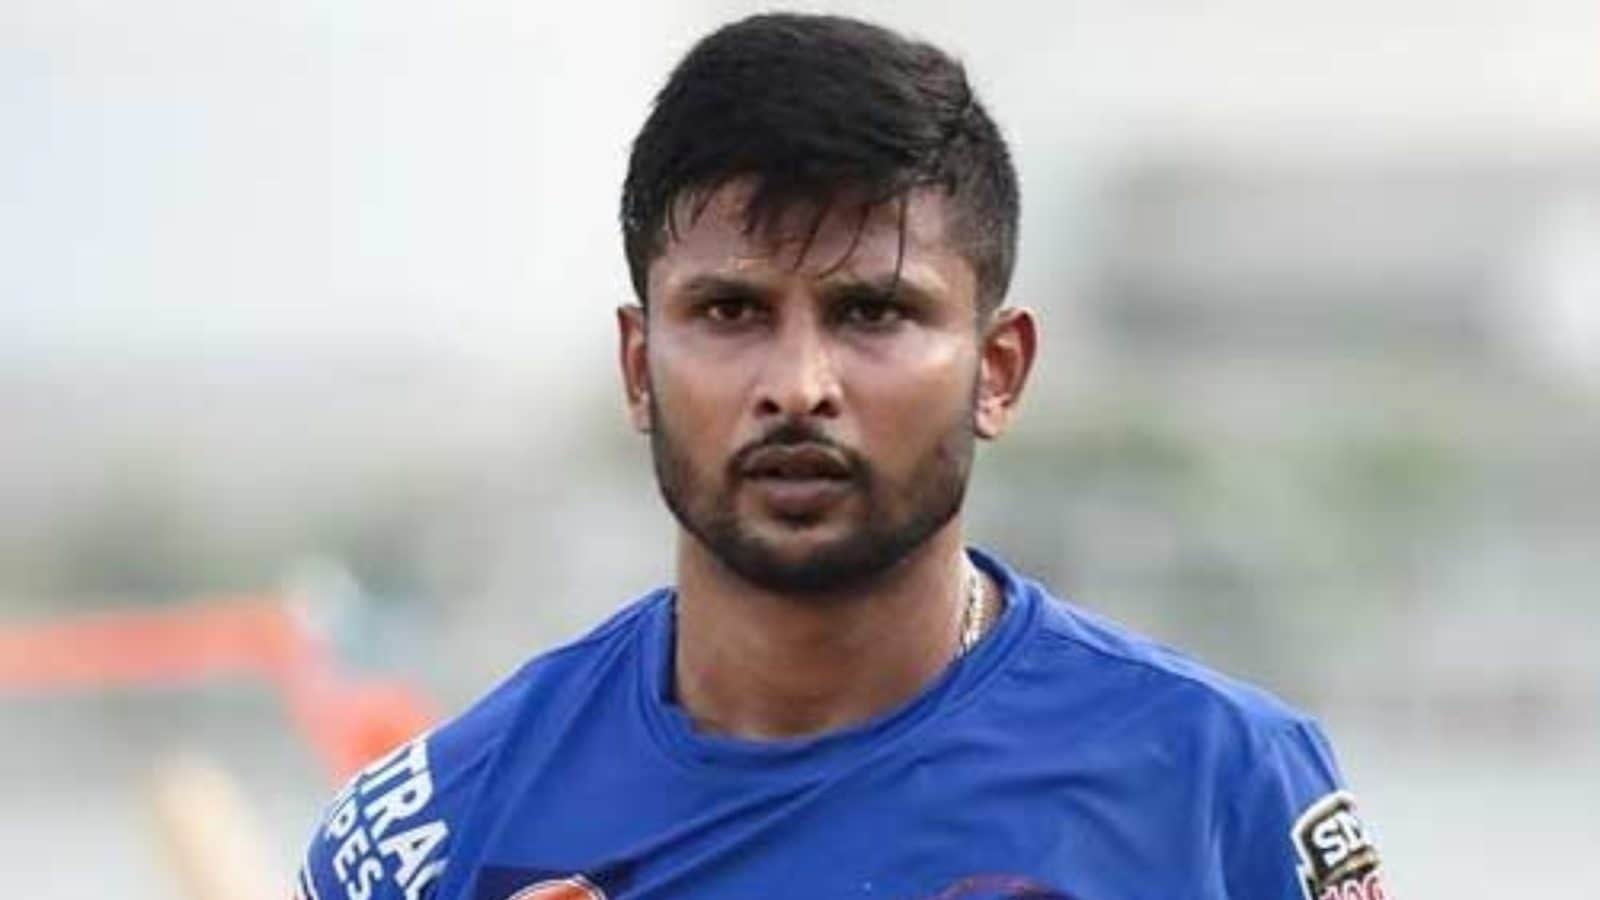 CSK wishes 'speedy recovery' to Krishnappa Gowtham after he tested positive for coronavirus